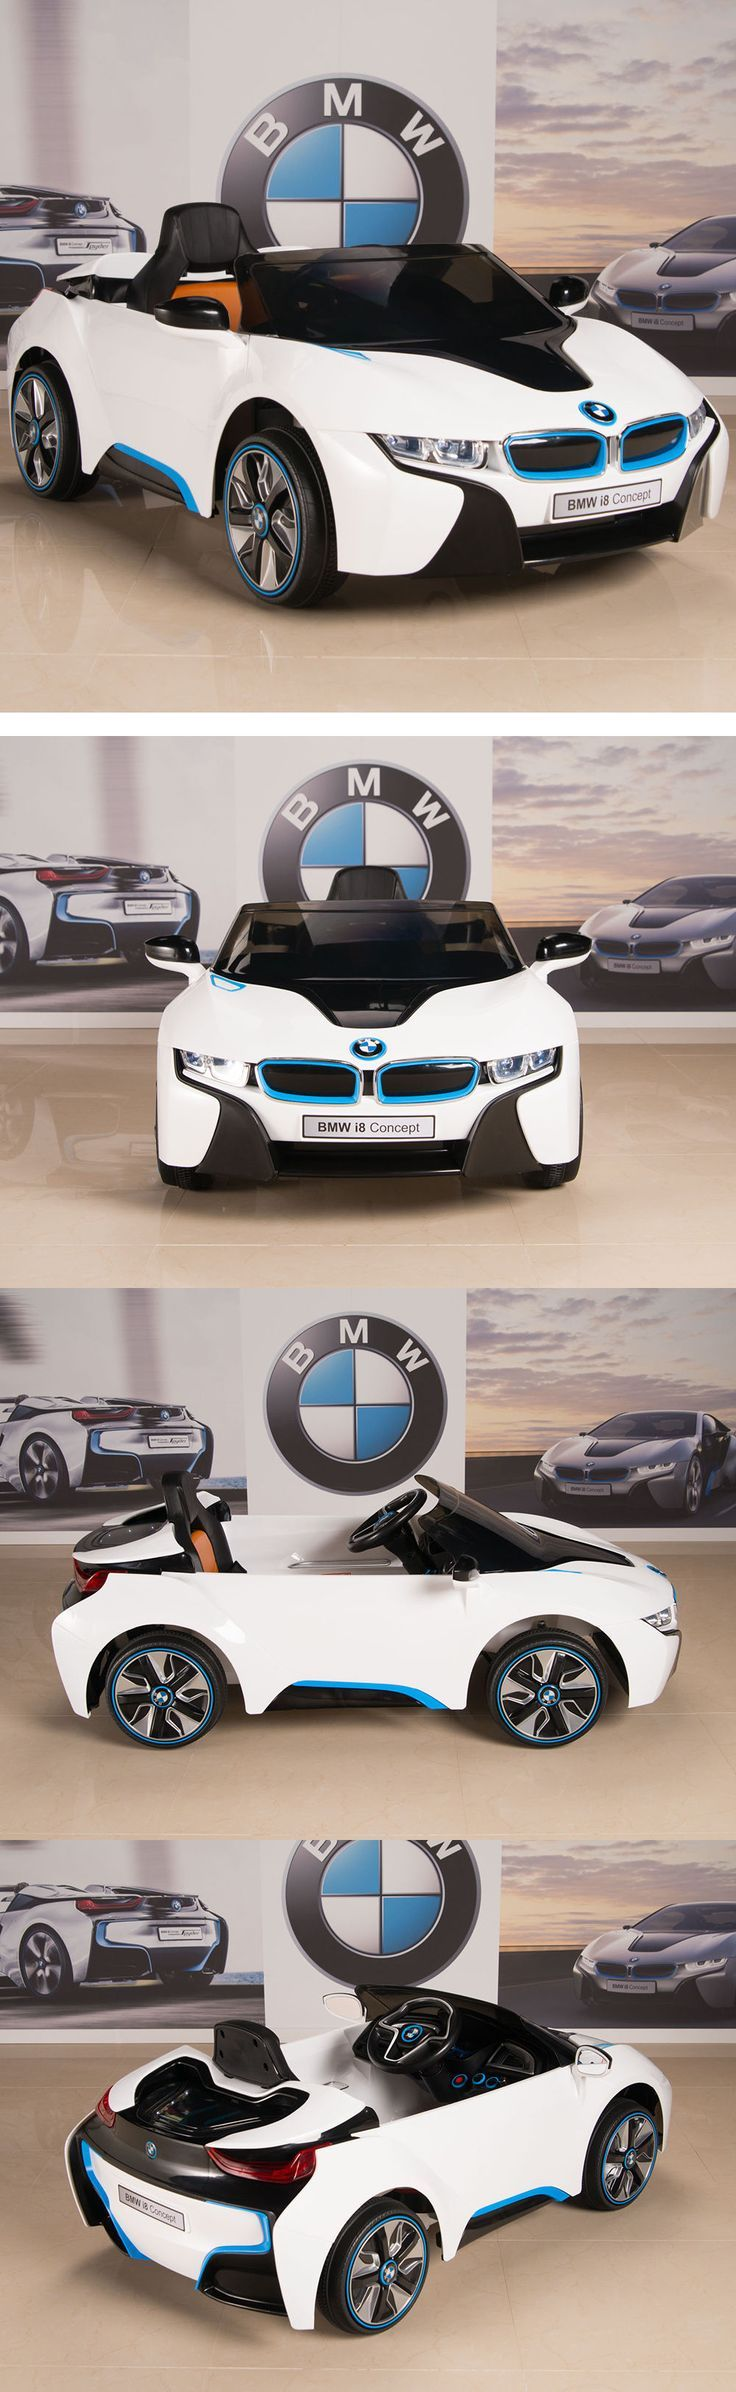 Awesome bmw 2017 ride on toys and accessories 145944 bmw i8 ride on kids